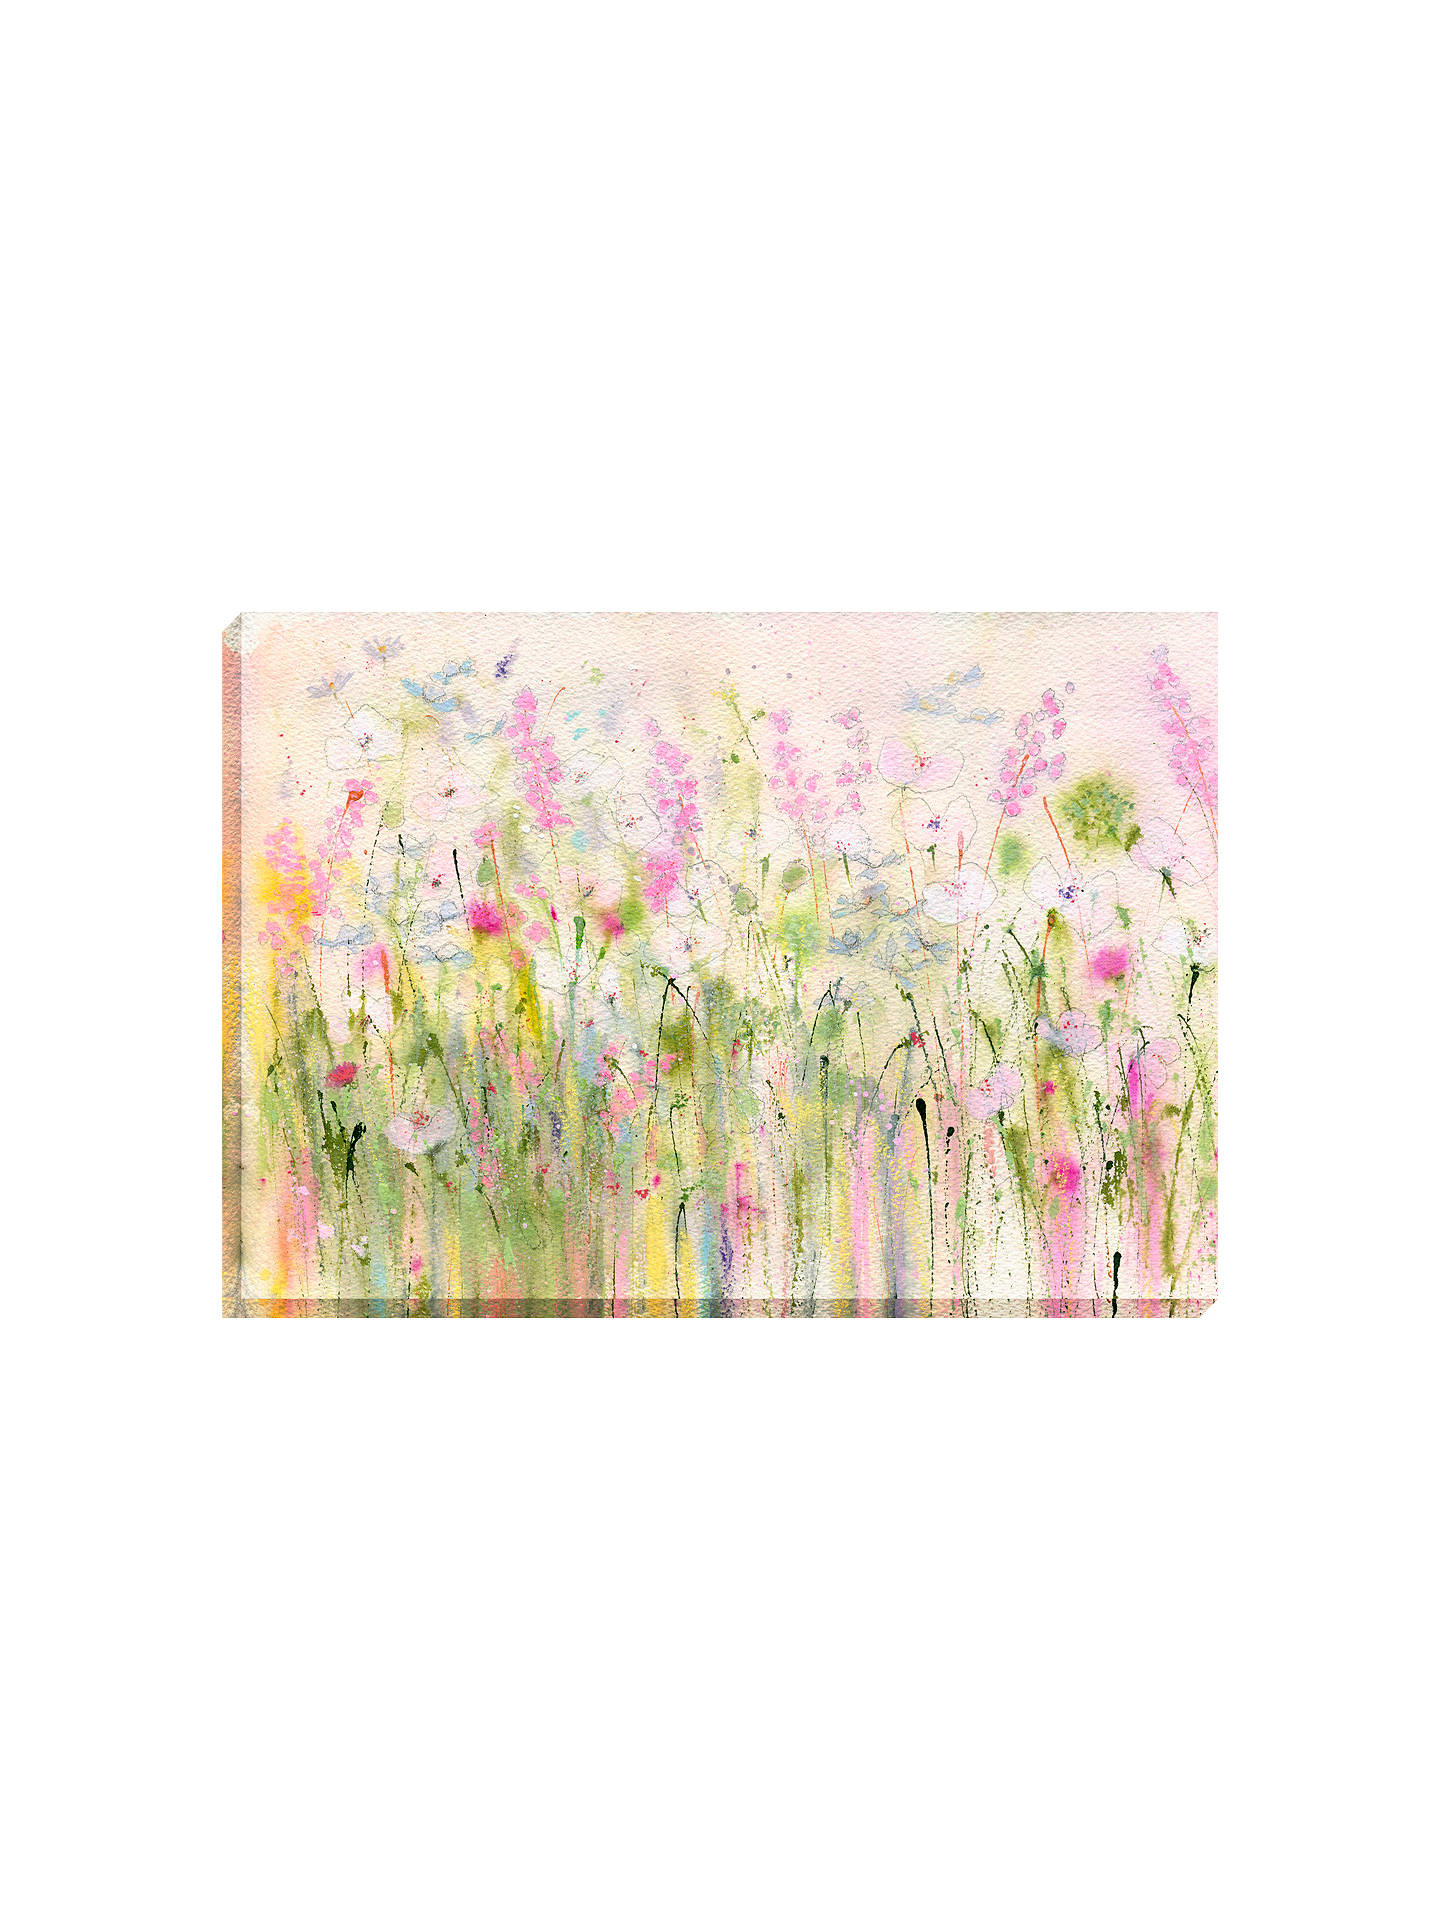 Buy Sue Fenlon - Summer Canvas, 70 x 100cm Online at johnlewis.com